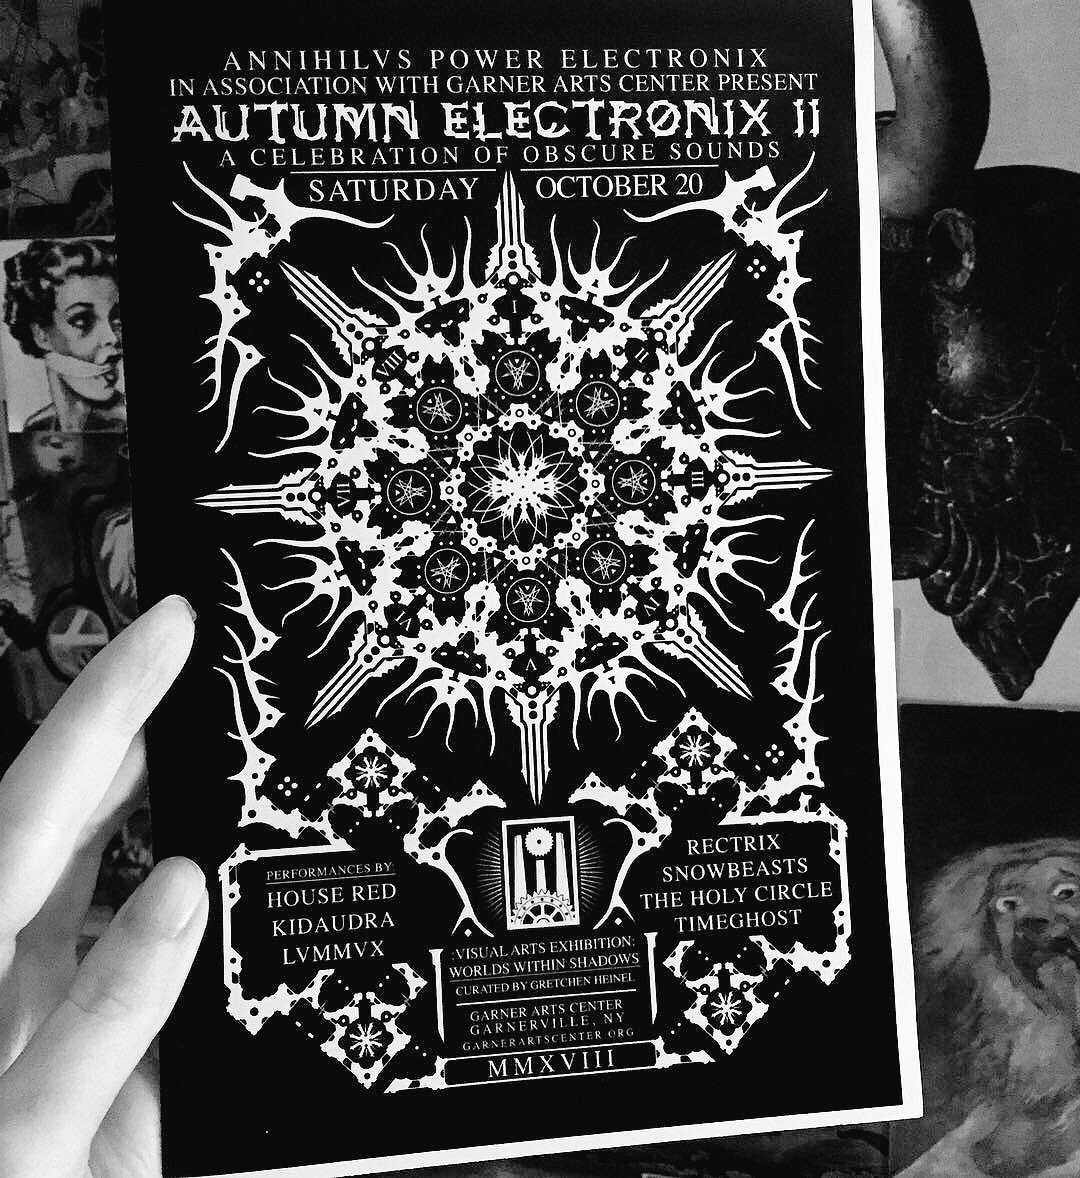 Autumn Electronix II at Garner Arts Center